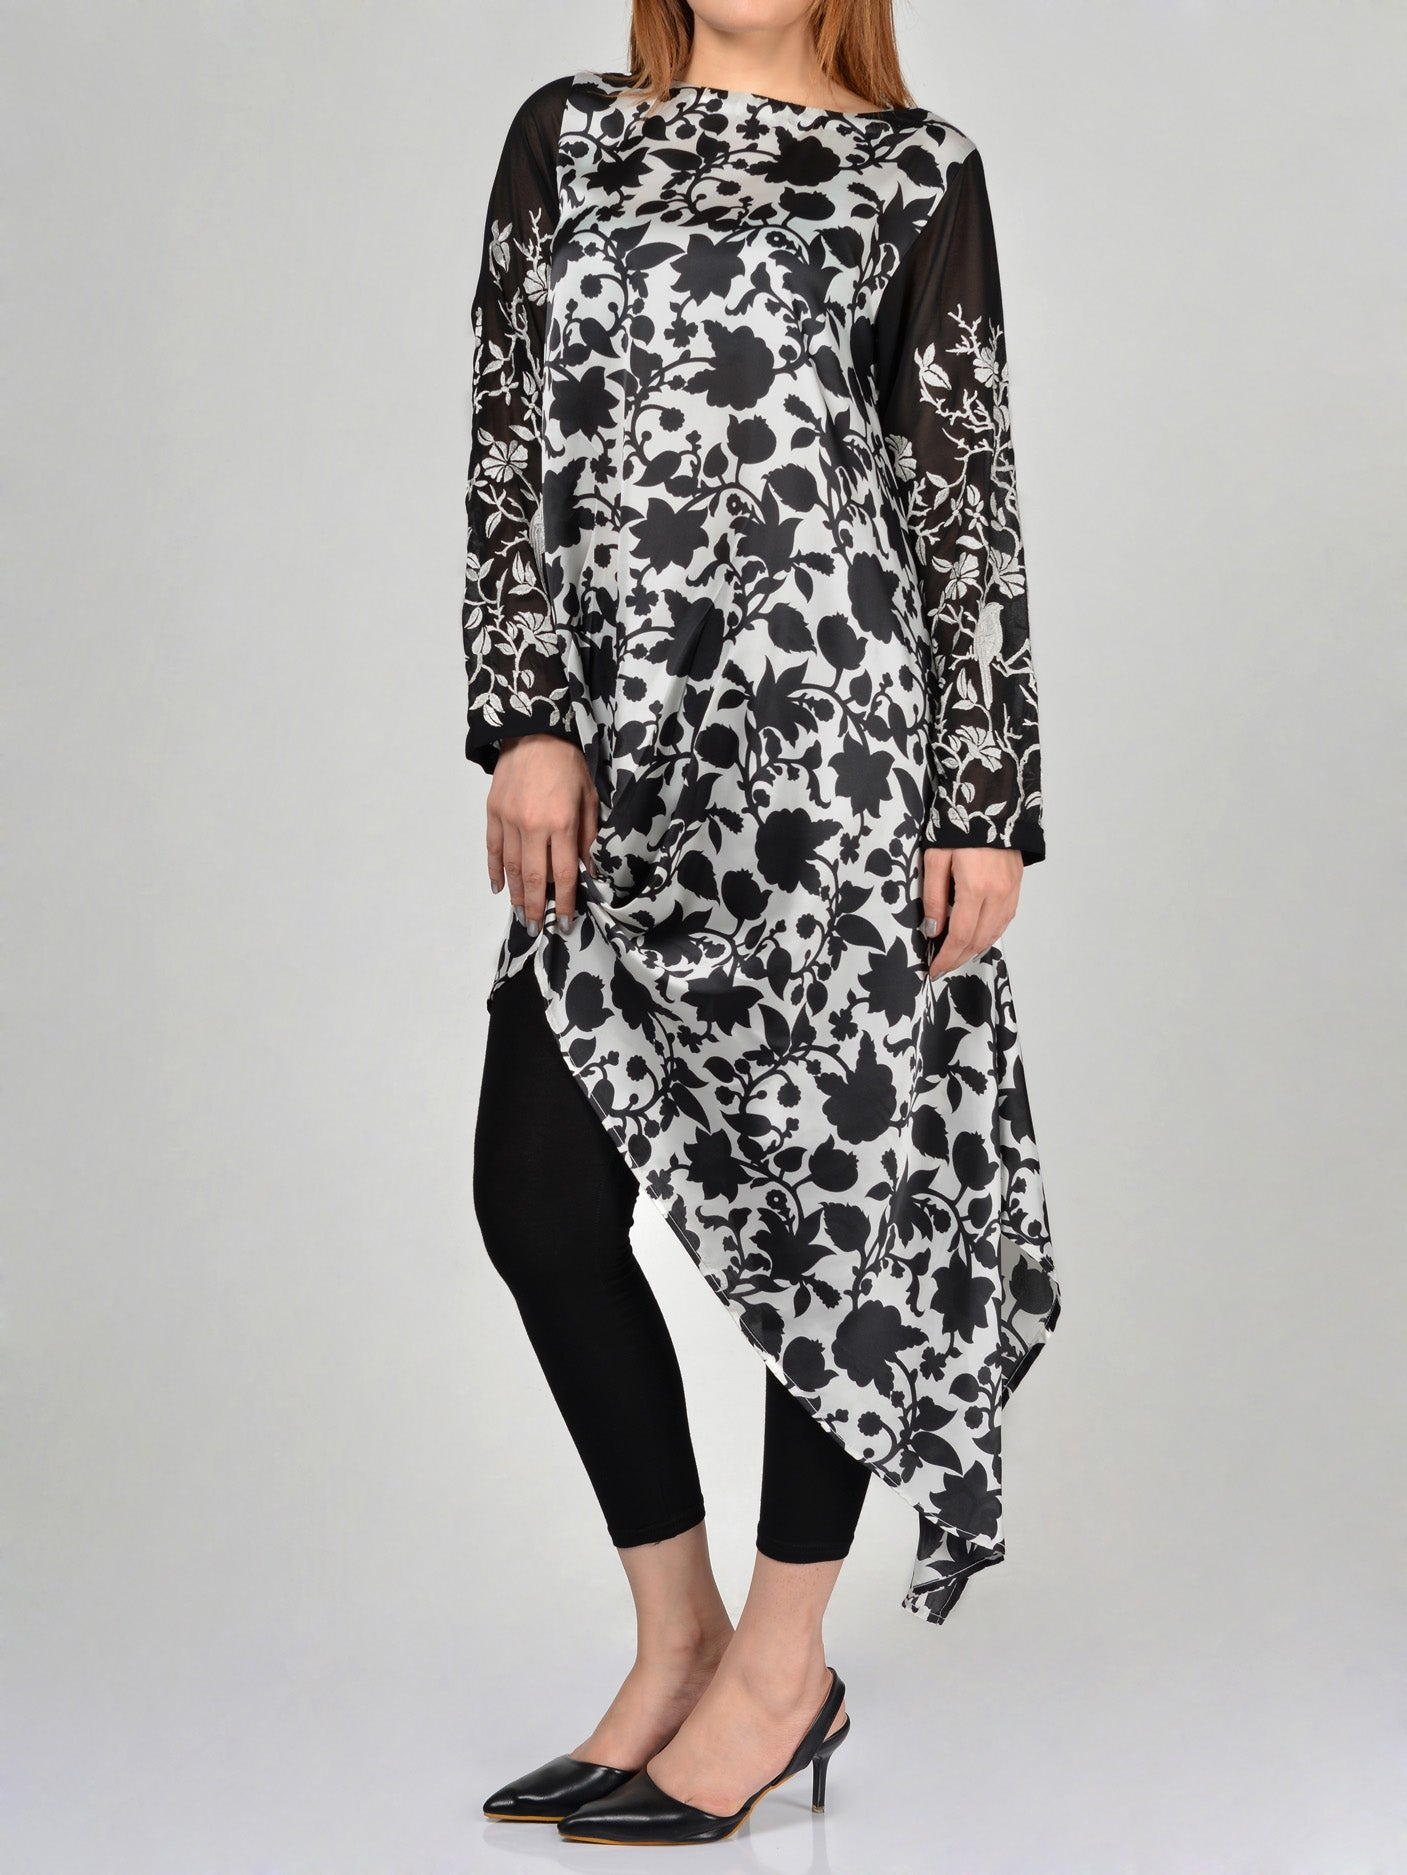 Limelight Embroidered Silk Shirt F0388 Online in Pakistan | Limelight.pk